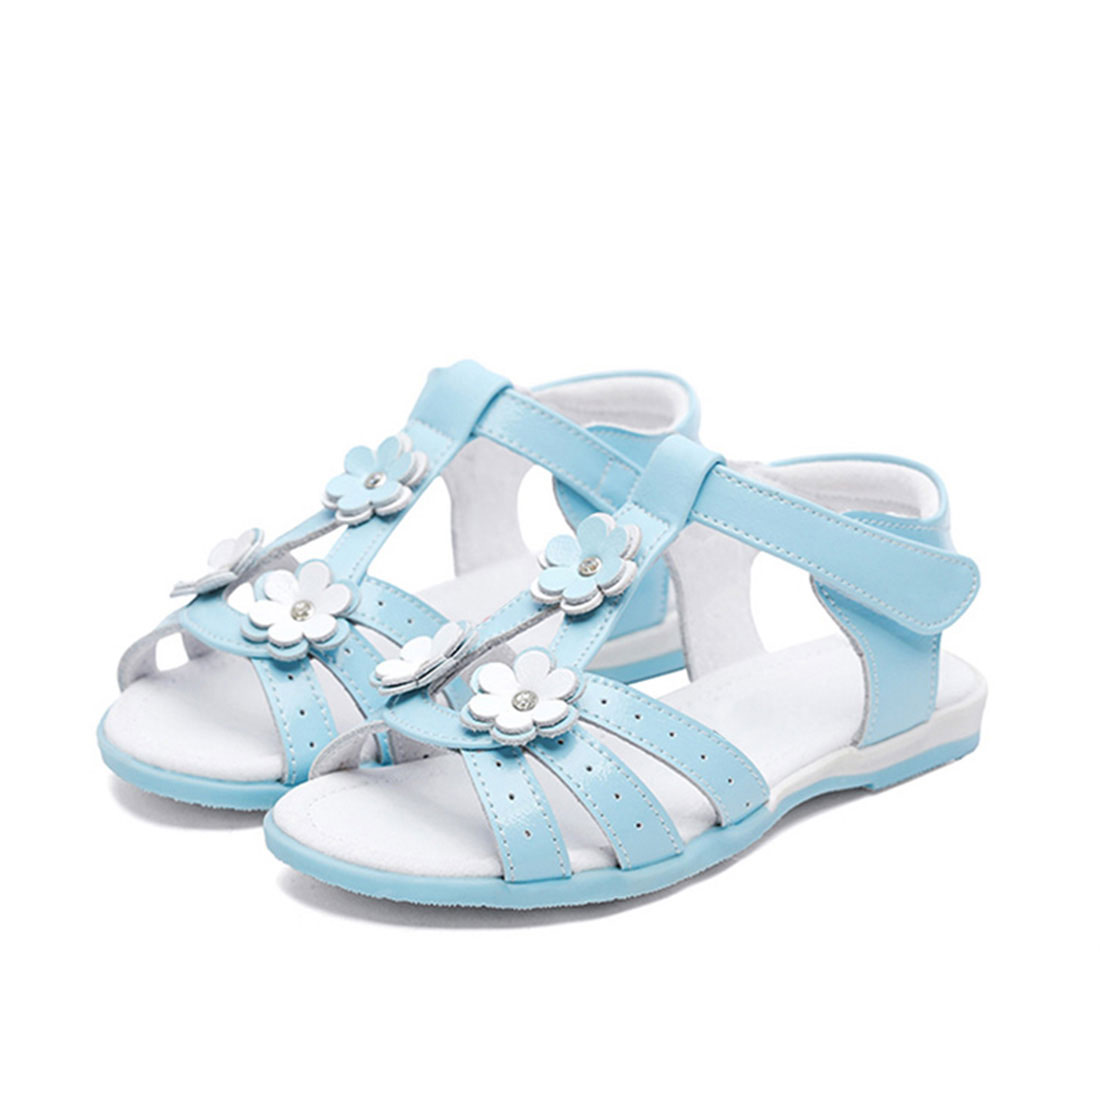 High quality leather flat open toe summer little flower girls kids sandals shoes